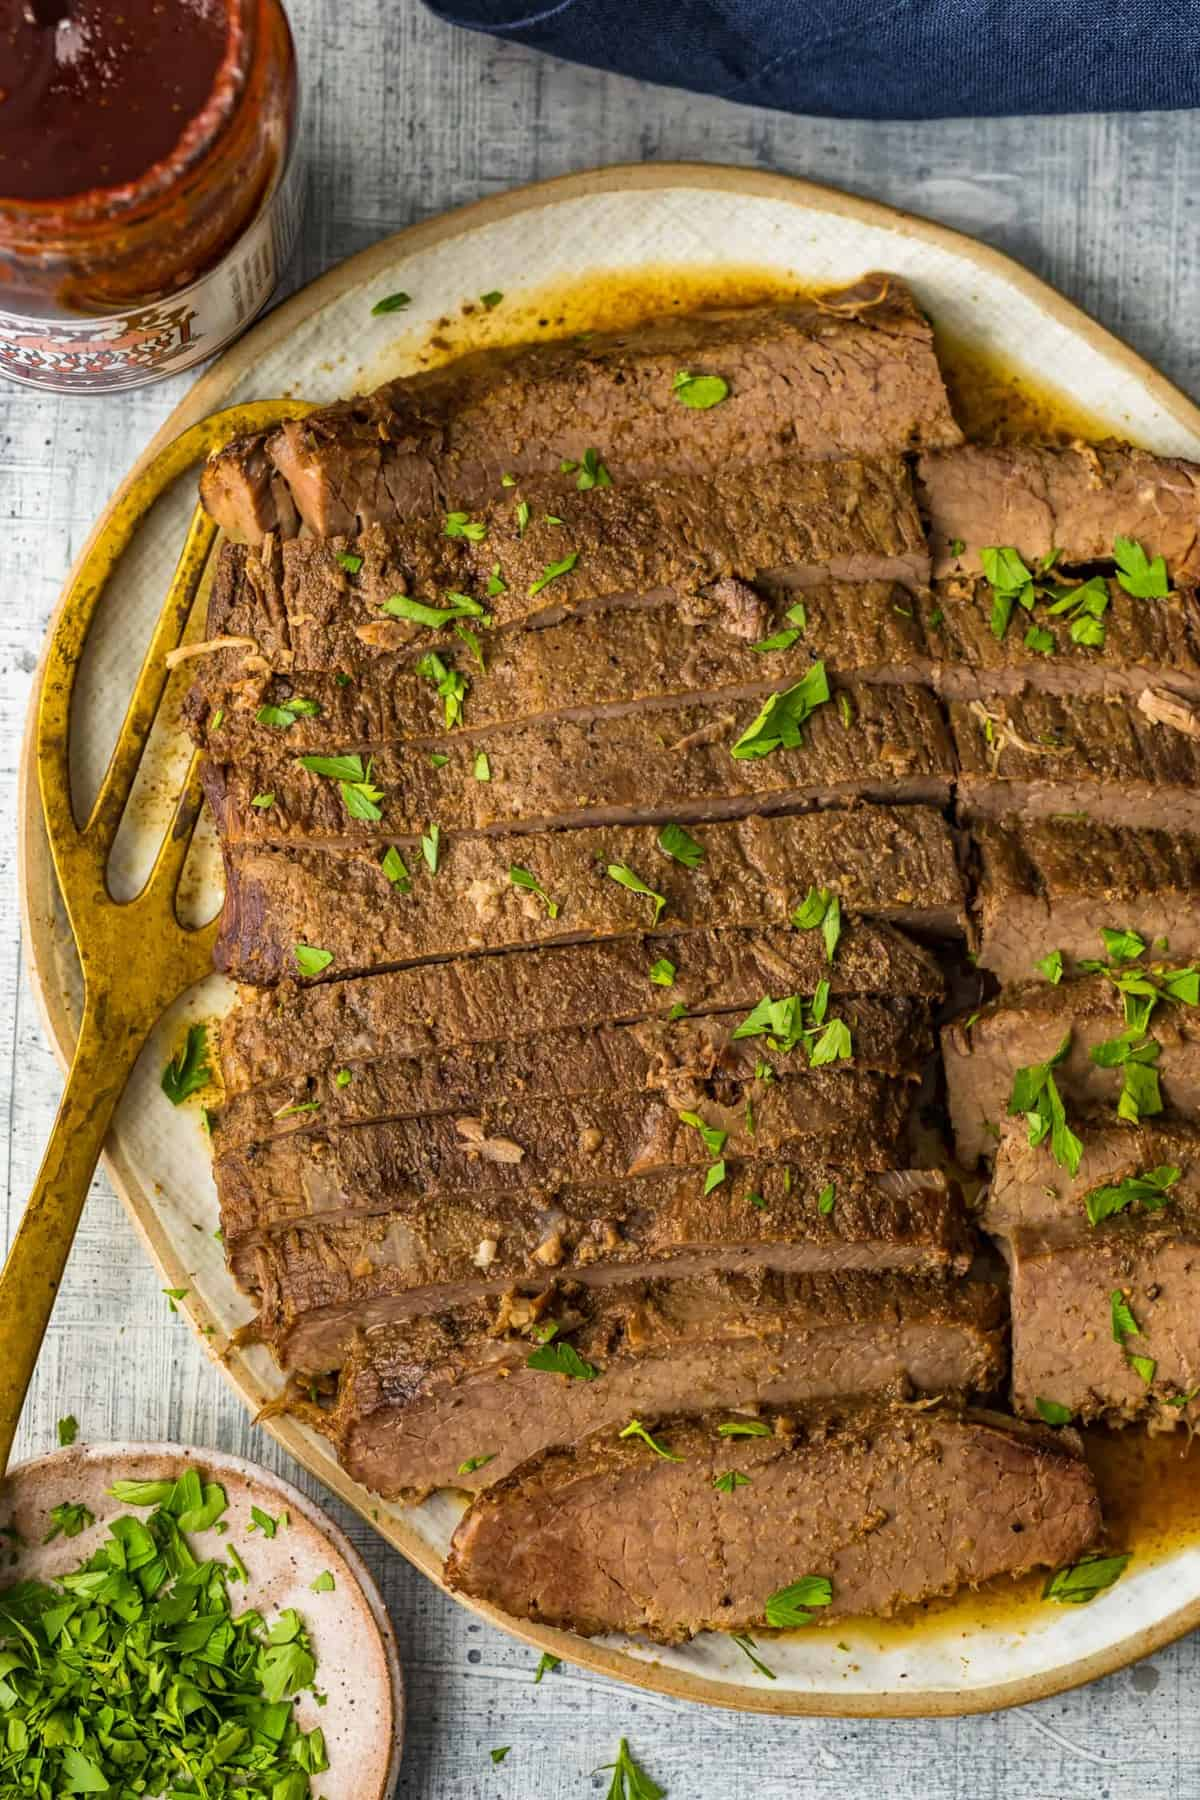 Slow Cooker Brisket garnished with fresh herbs